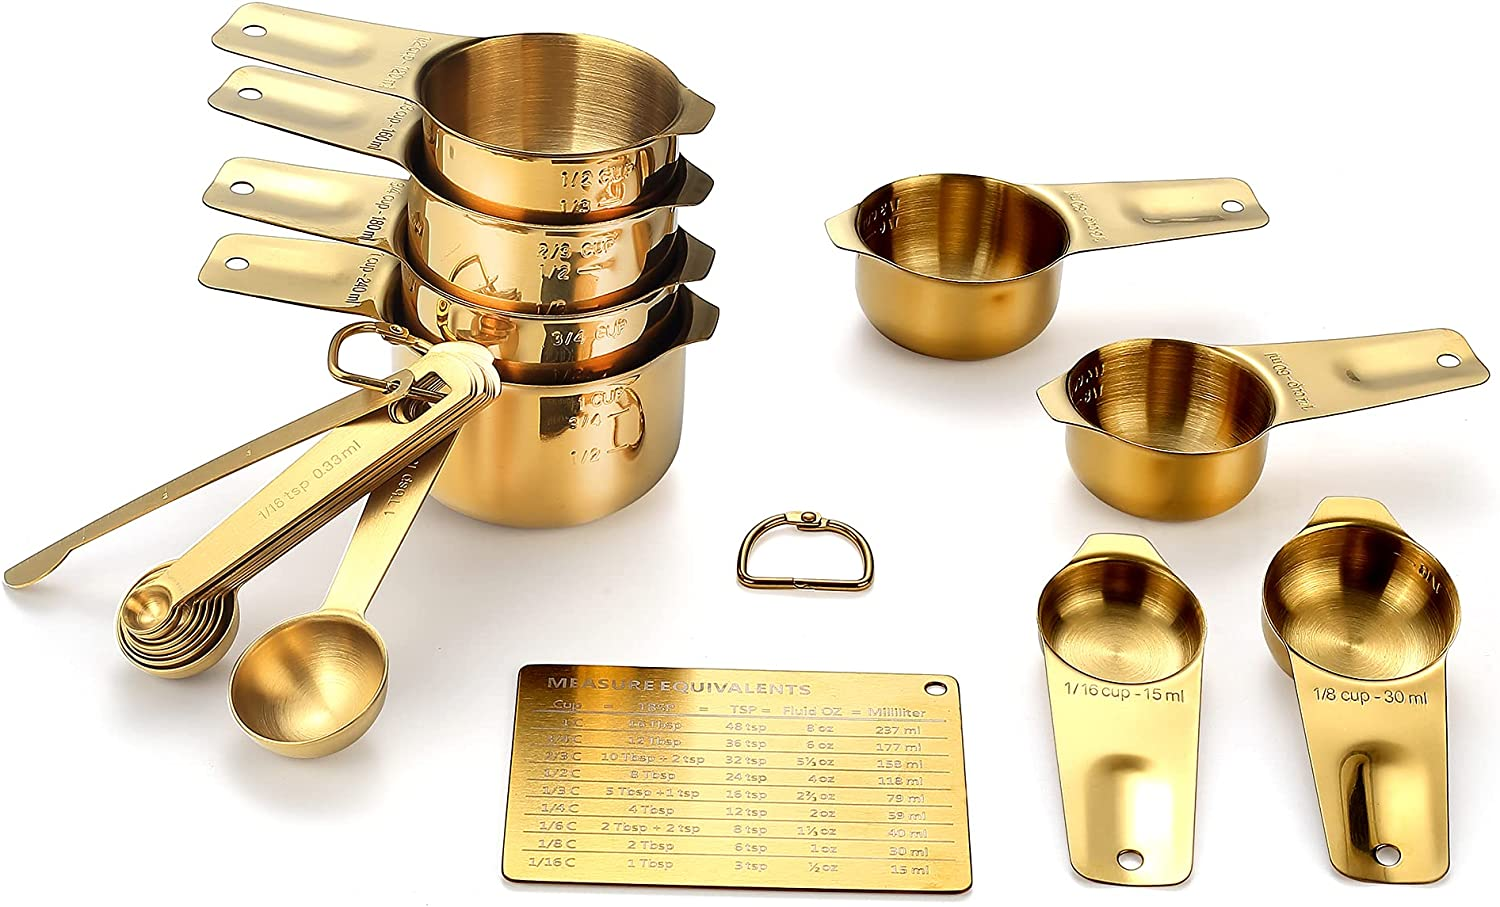 Gold Measuring Cups and Spoons Set (19PCS Set - Golden Plated), 8 Measuring Cups, 9 Measuring Spoons, 1 Leveler and 1 Magnetic Measurement Chart, Stackable for Easy Storage with Gift Package